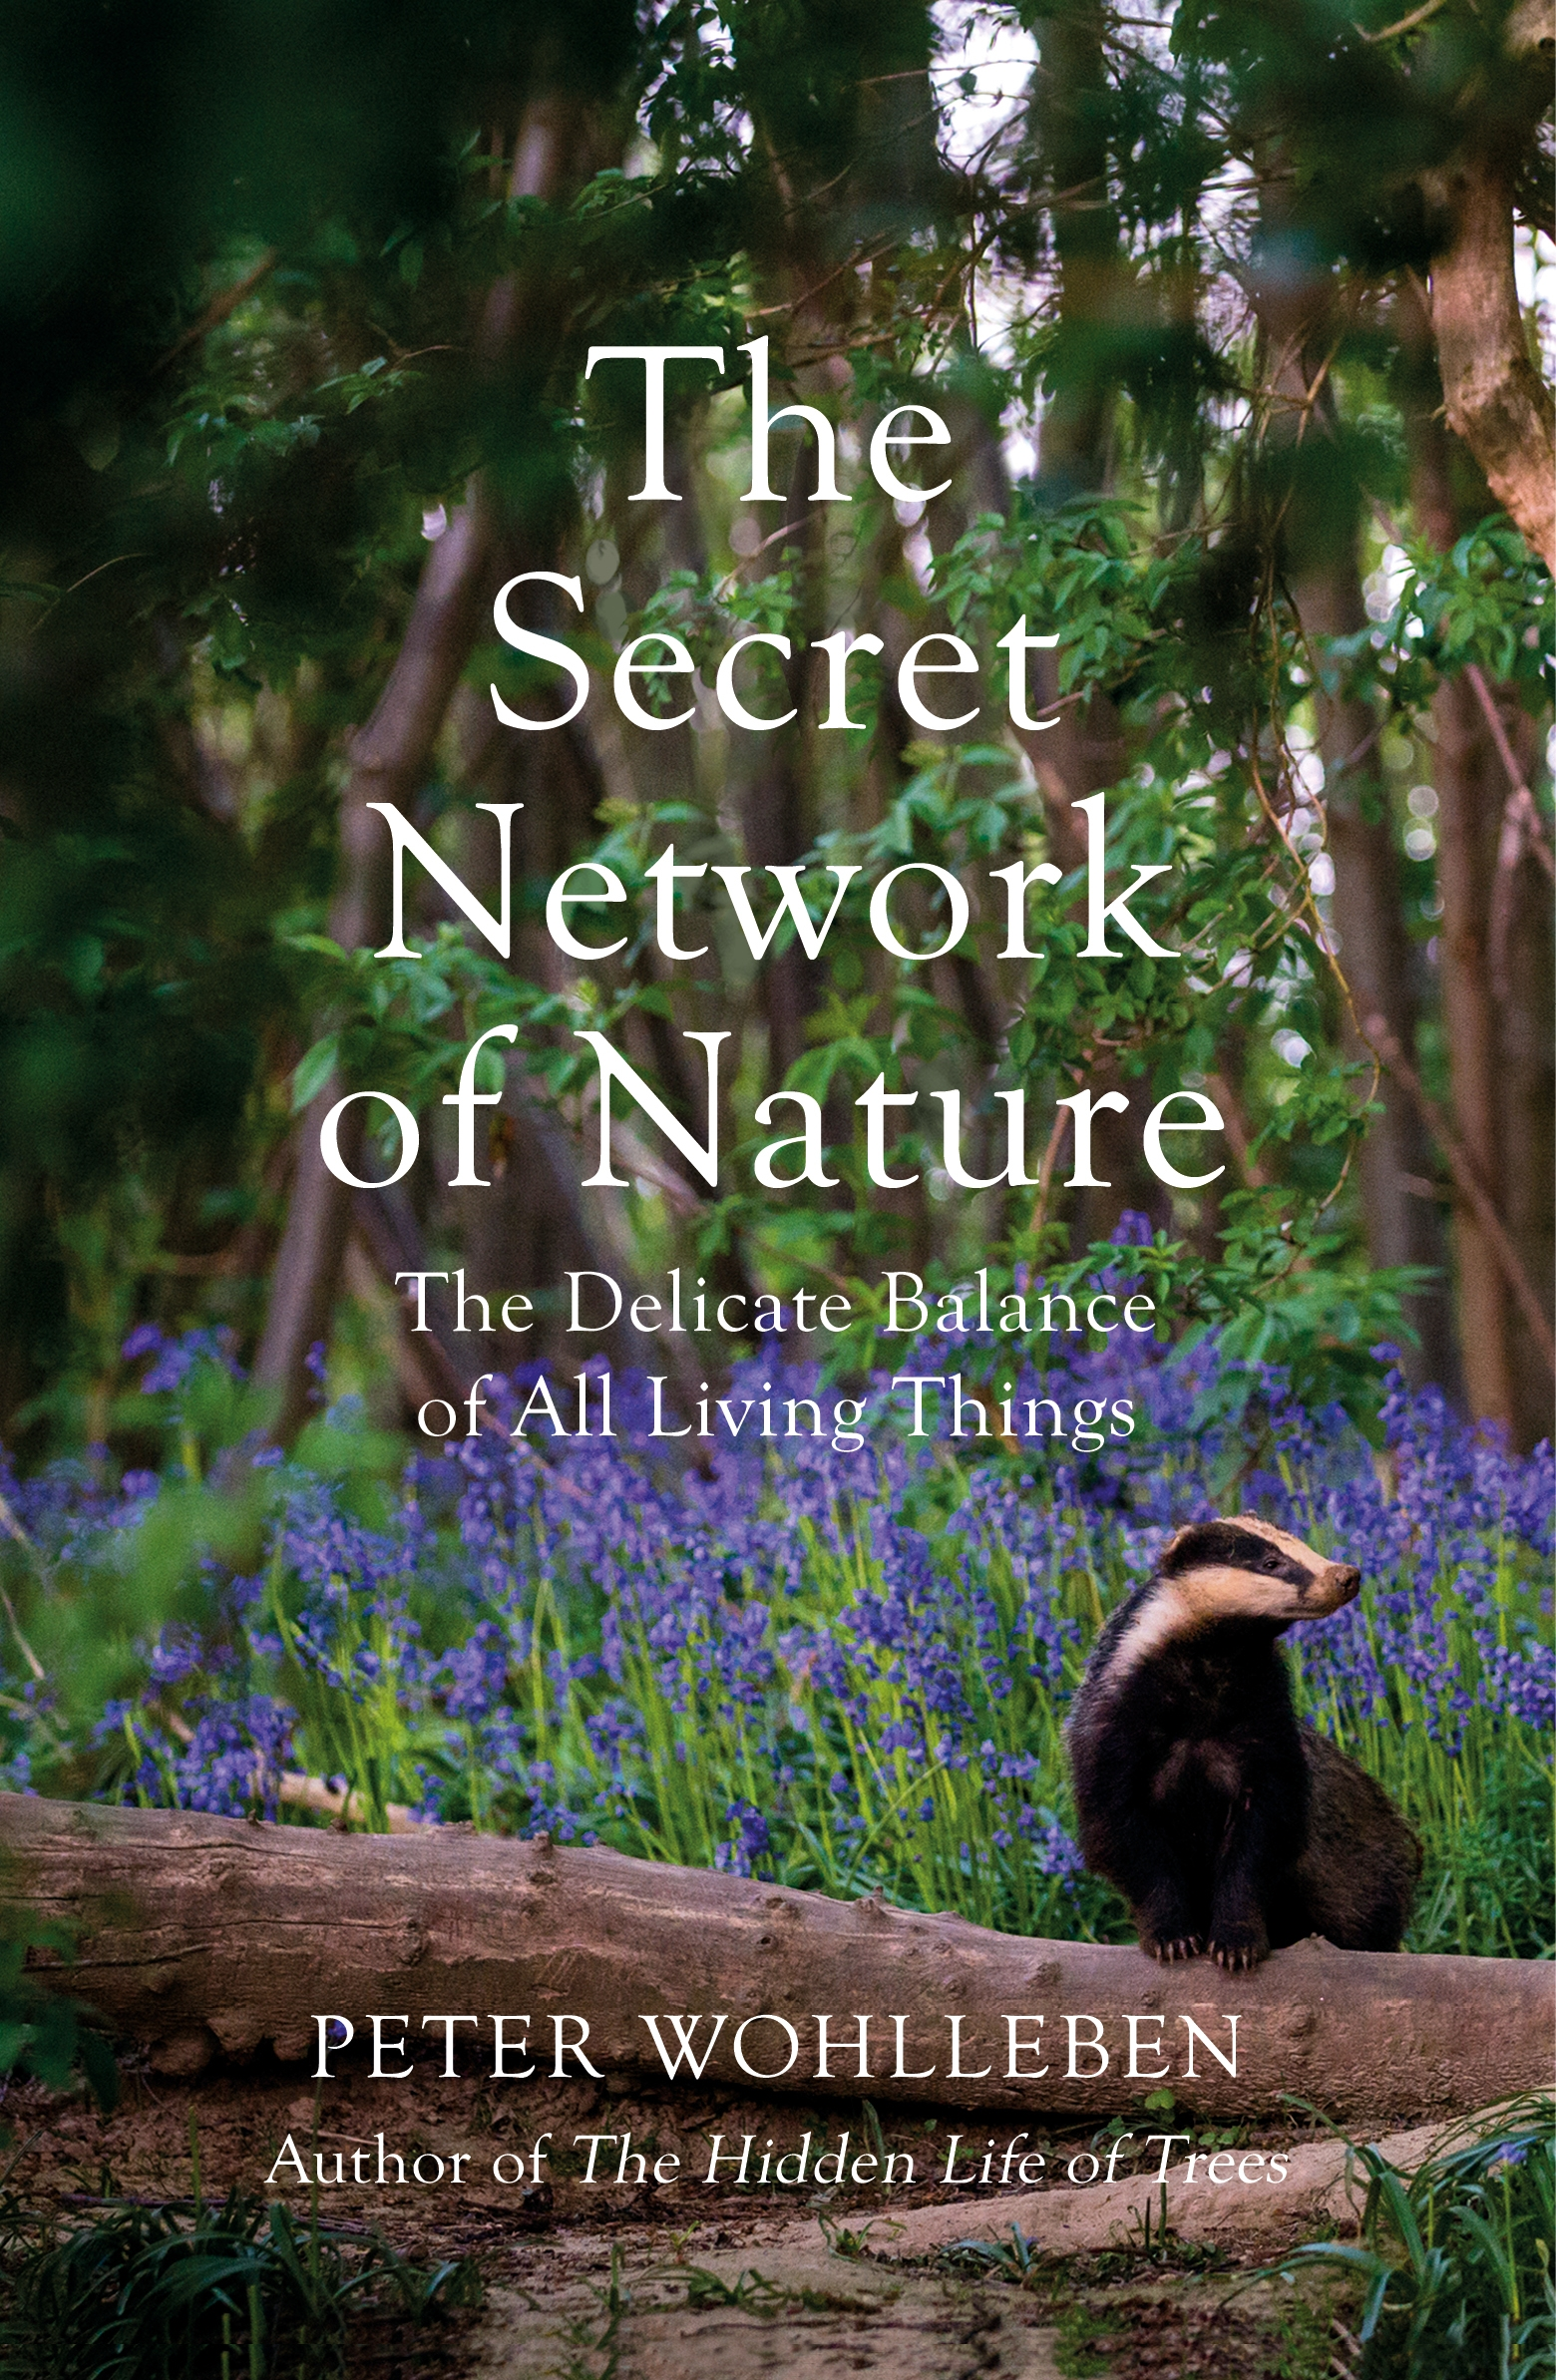 The Secret Network of Nature by Peter Wohlleben, ISBN: 9781847925251